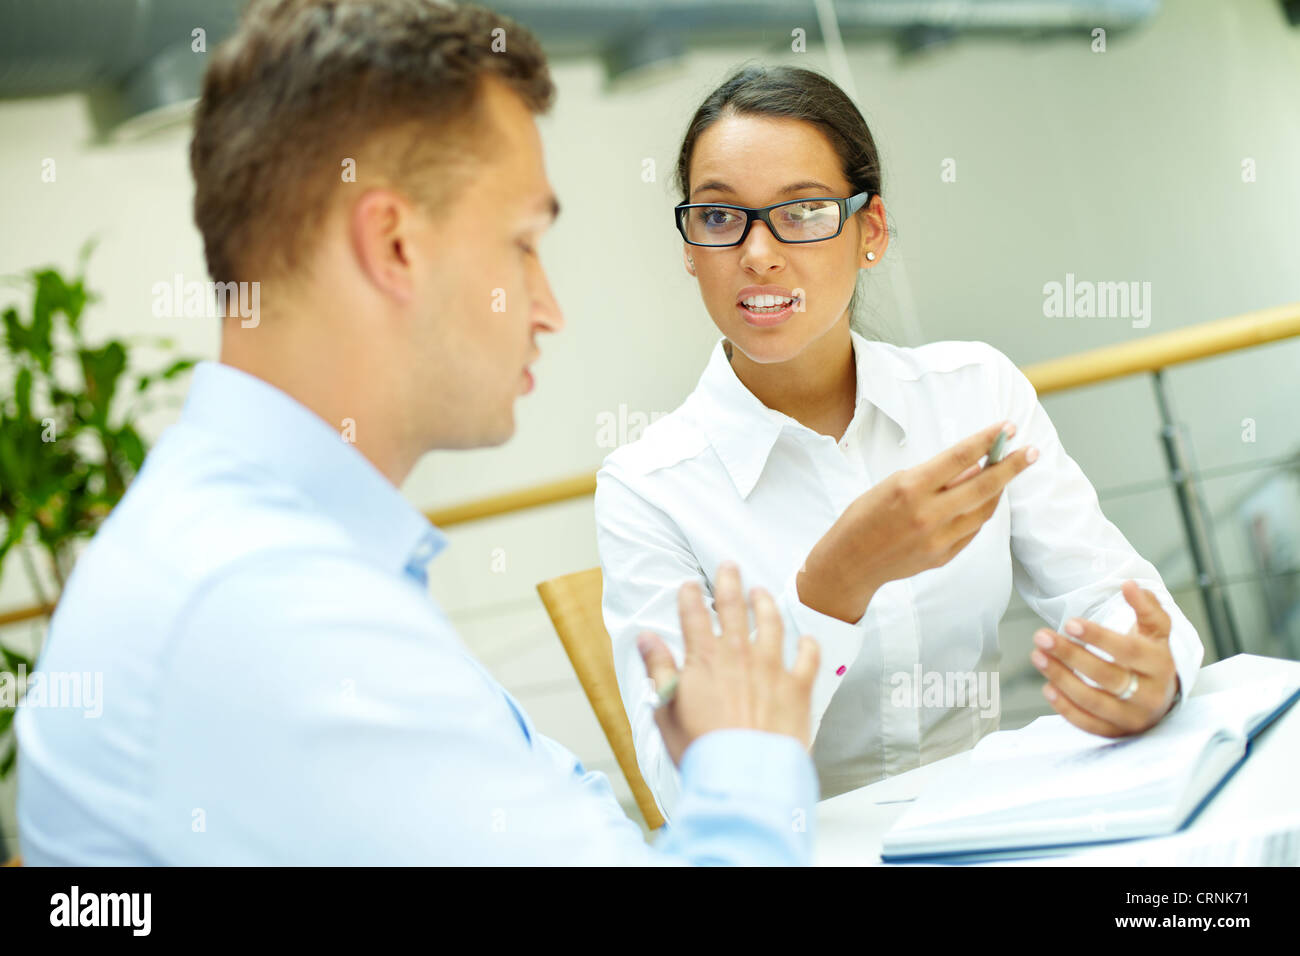 Disagreement occurring in the midst of the discussion between two business people Stock Photo